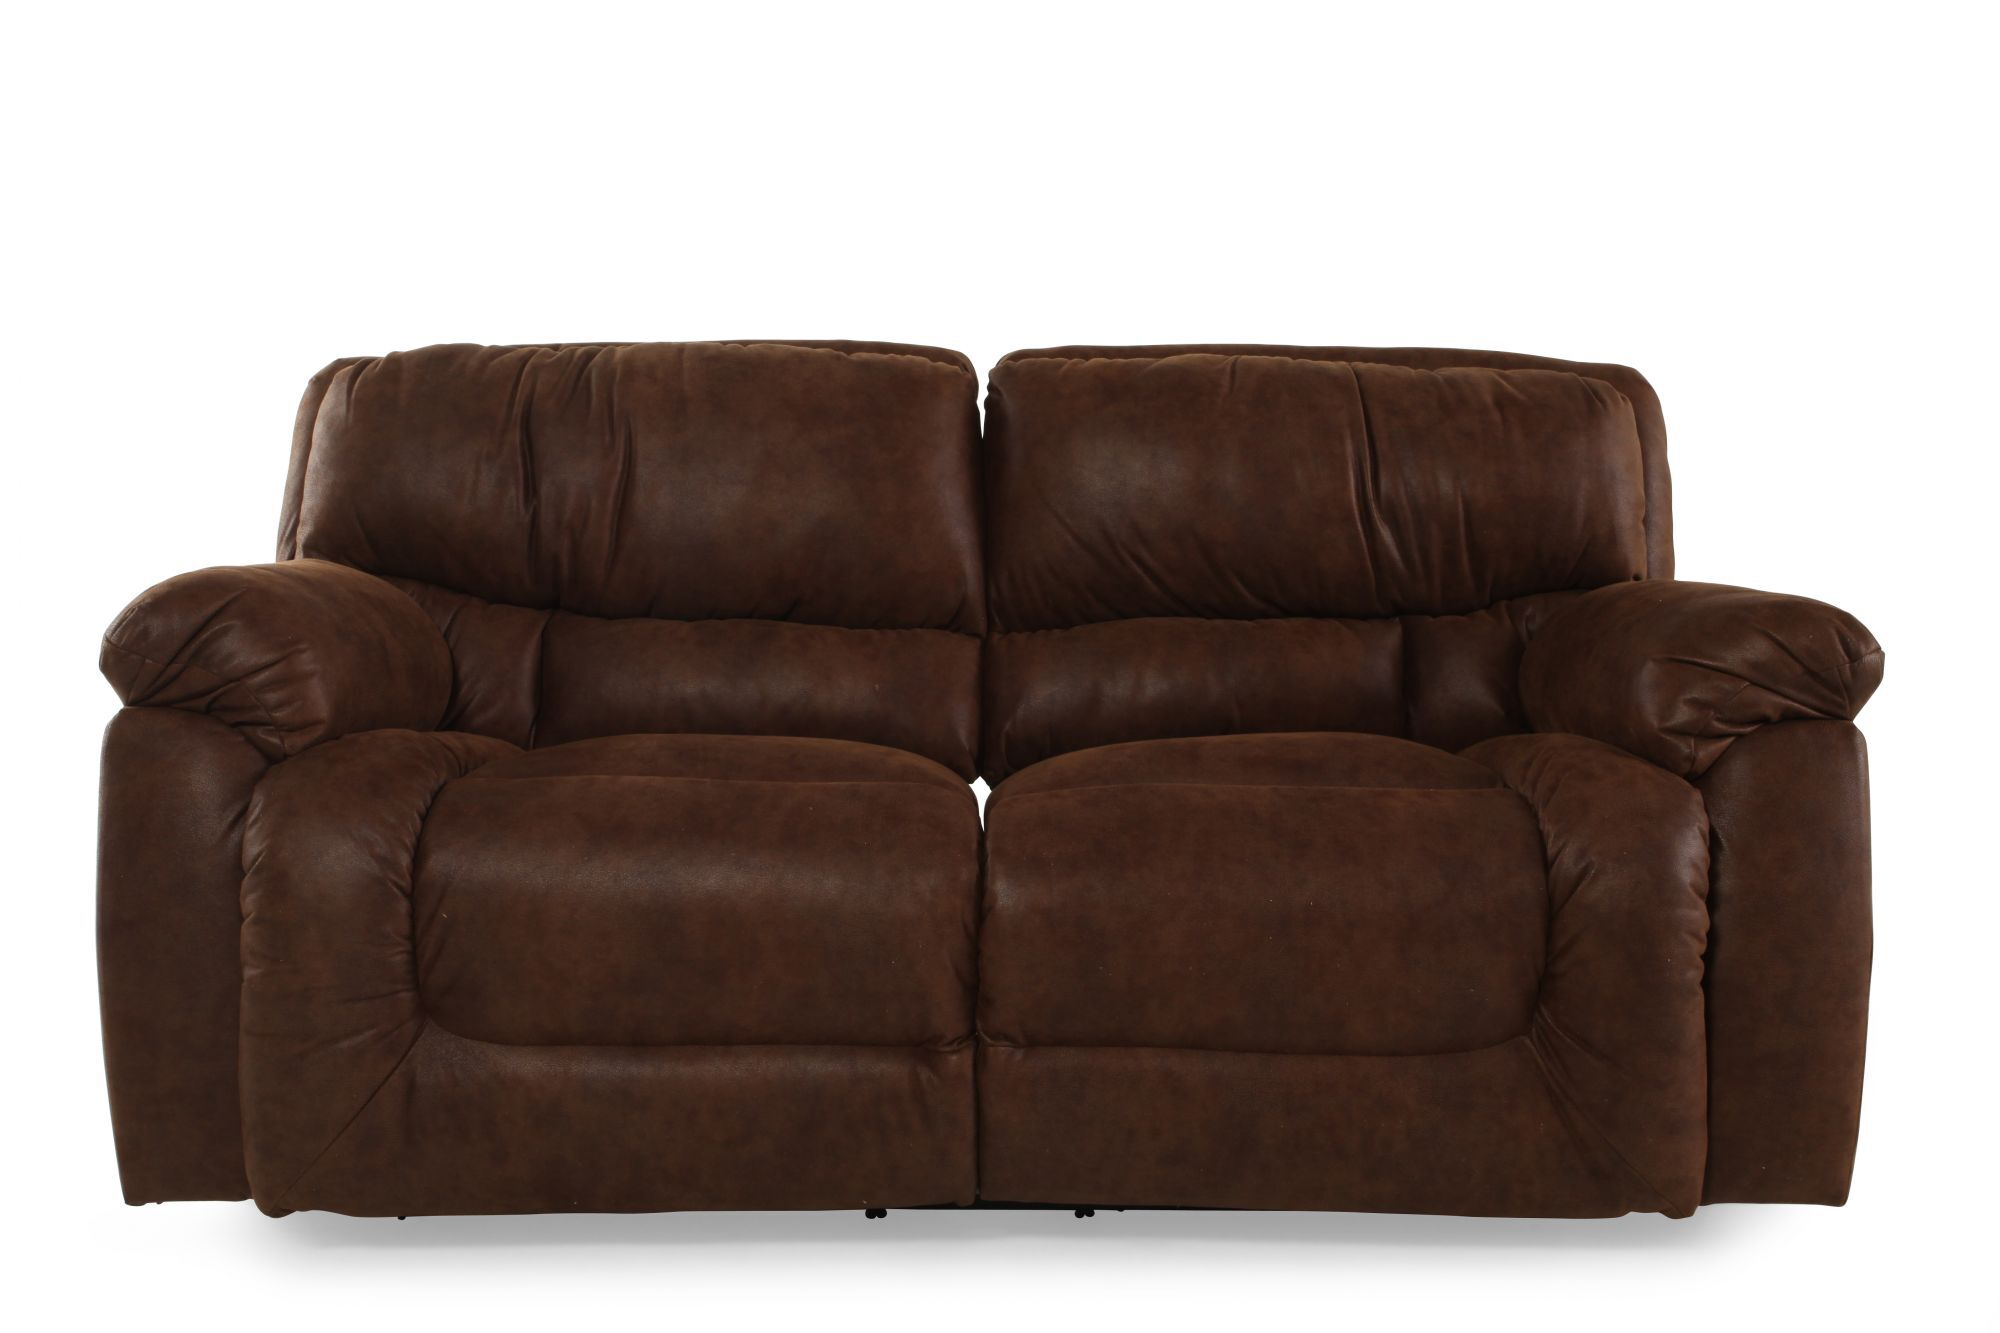 dark brown microfiber sofa seats for toddlers reclining in mathis brothers